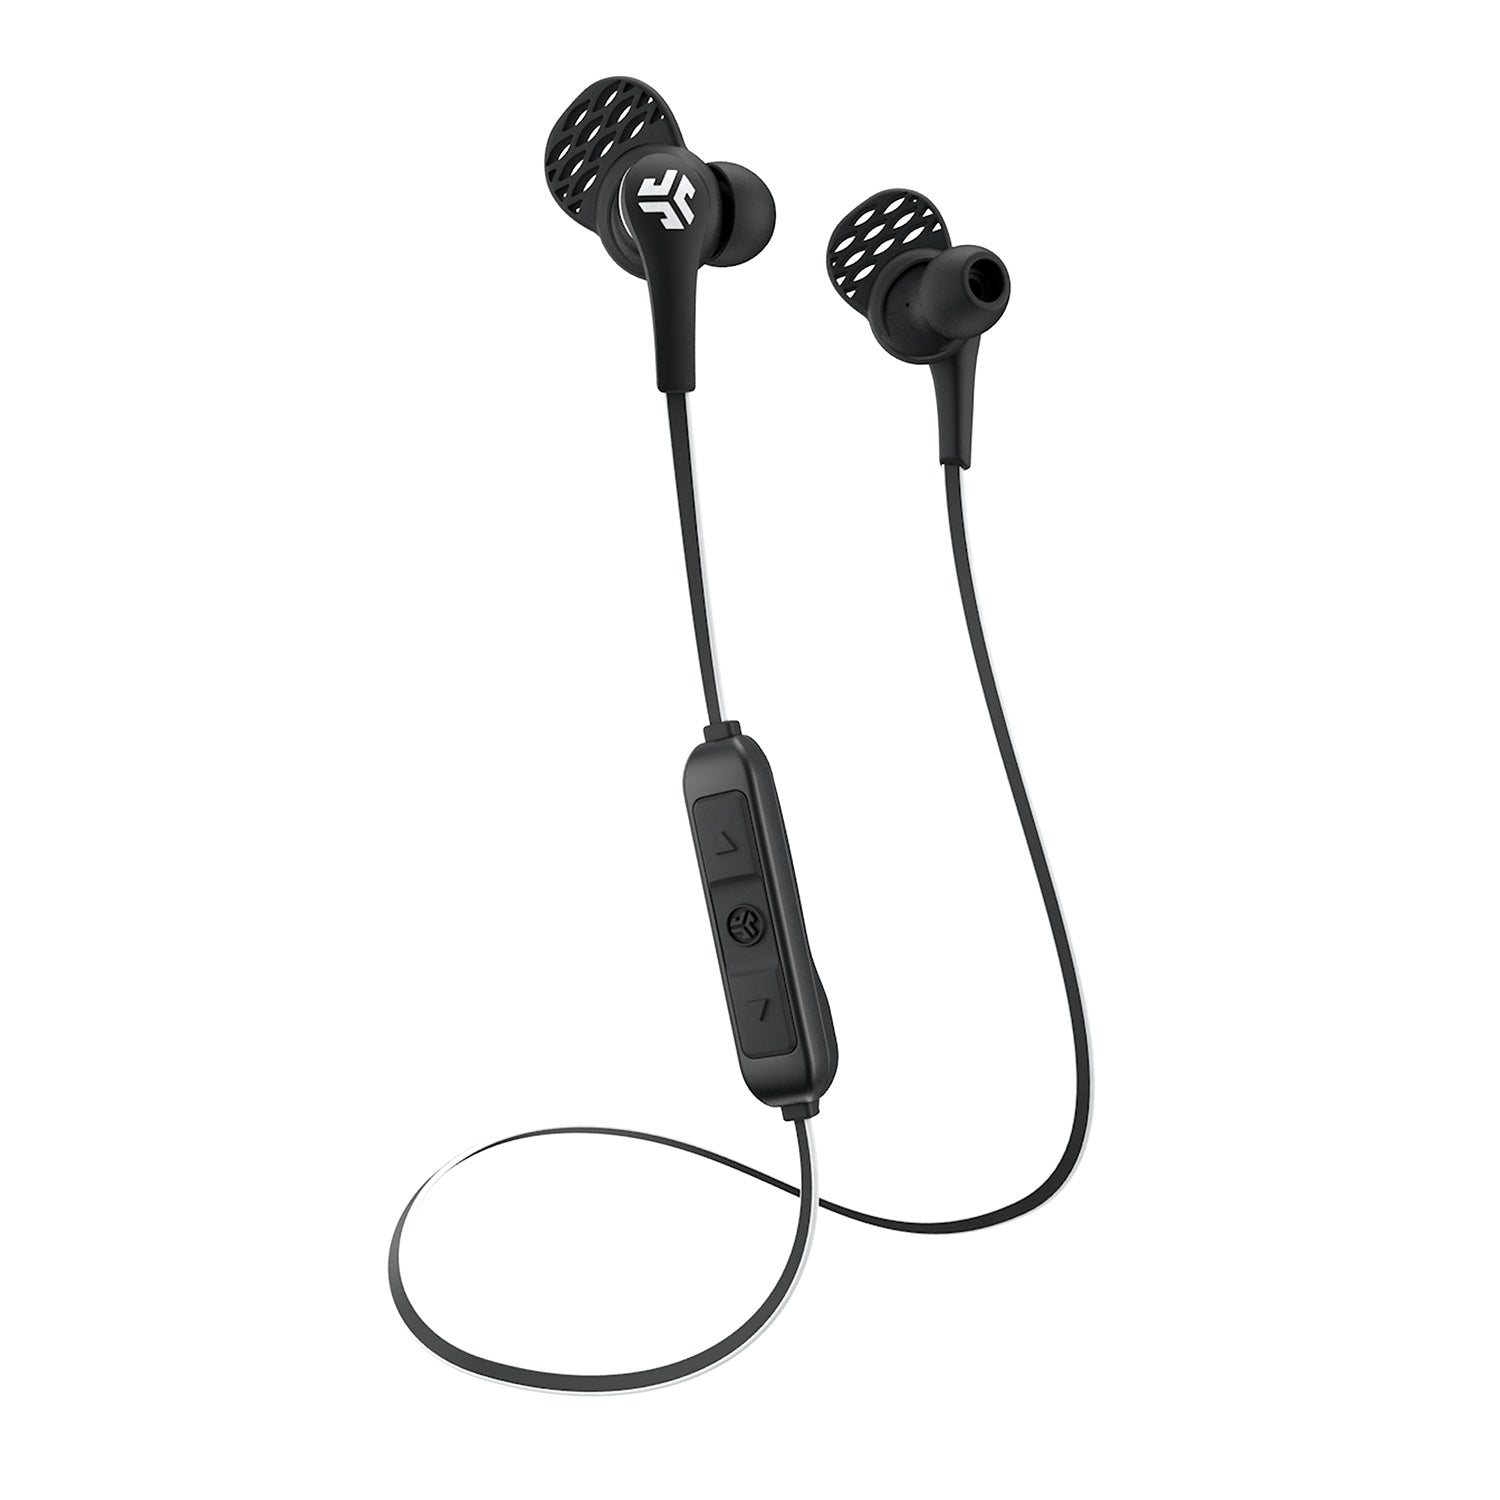 Jbuds Elite Bluetooth Earbuds 2 Pack Jlab Audio